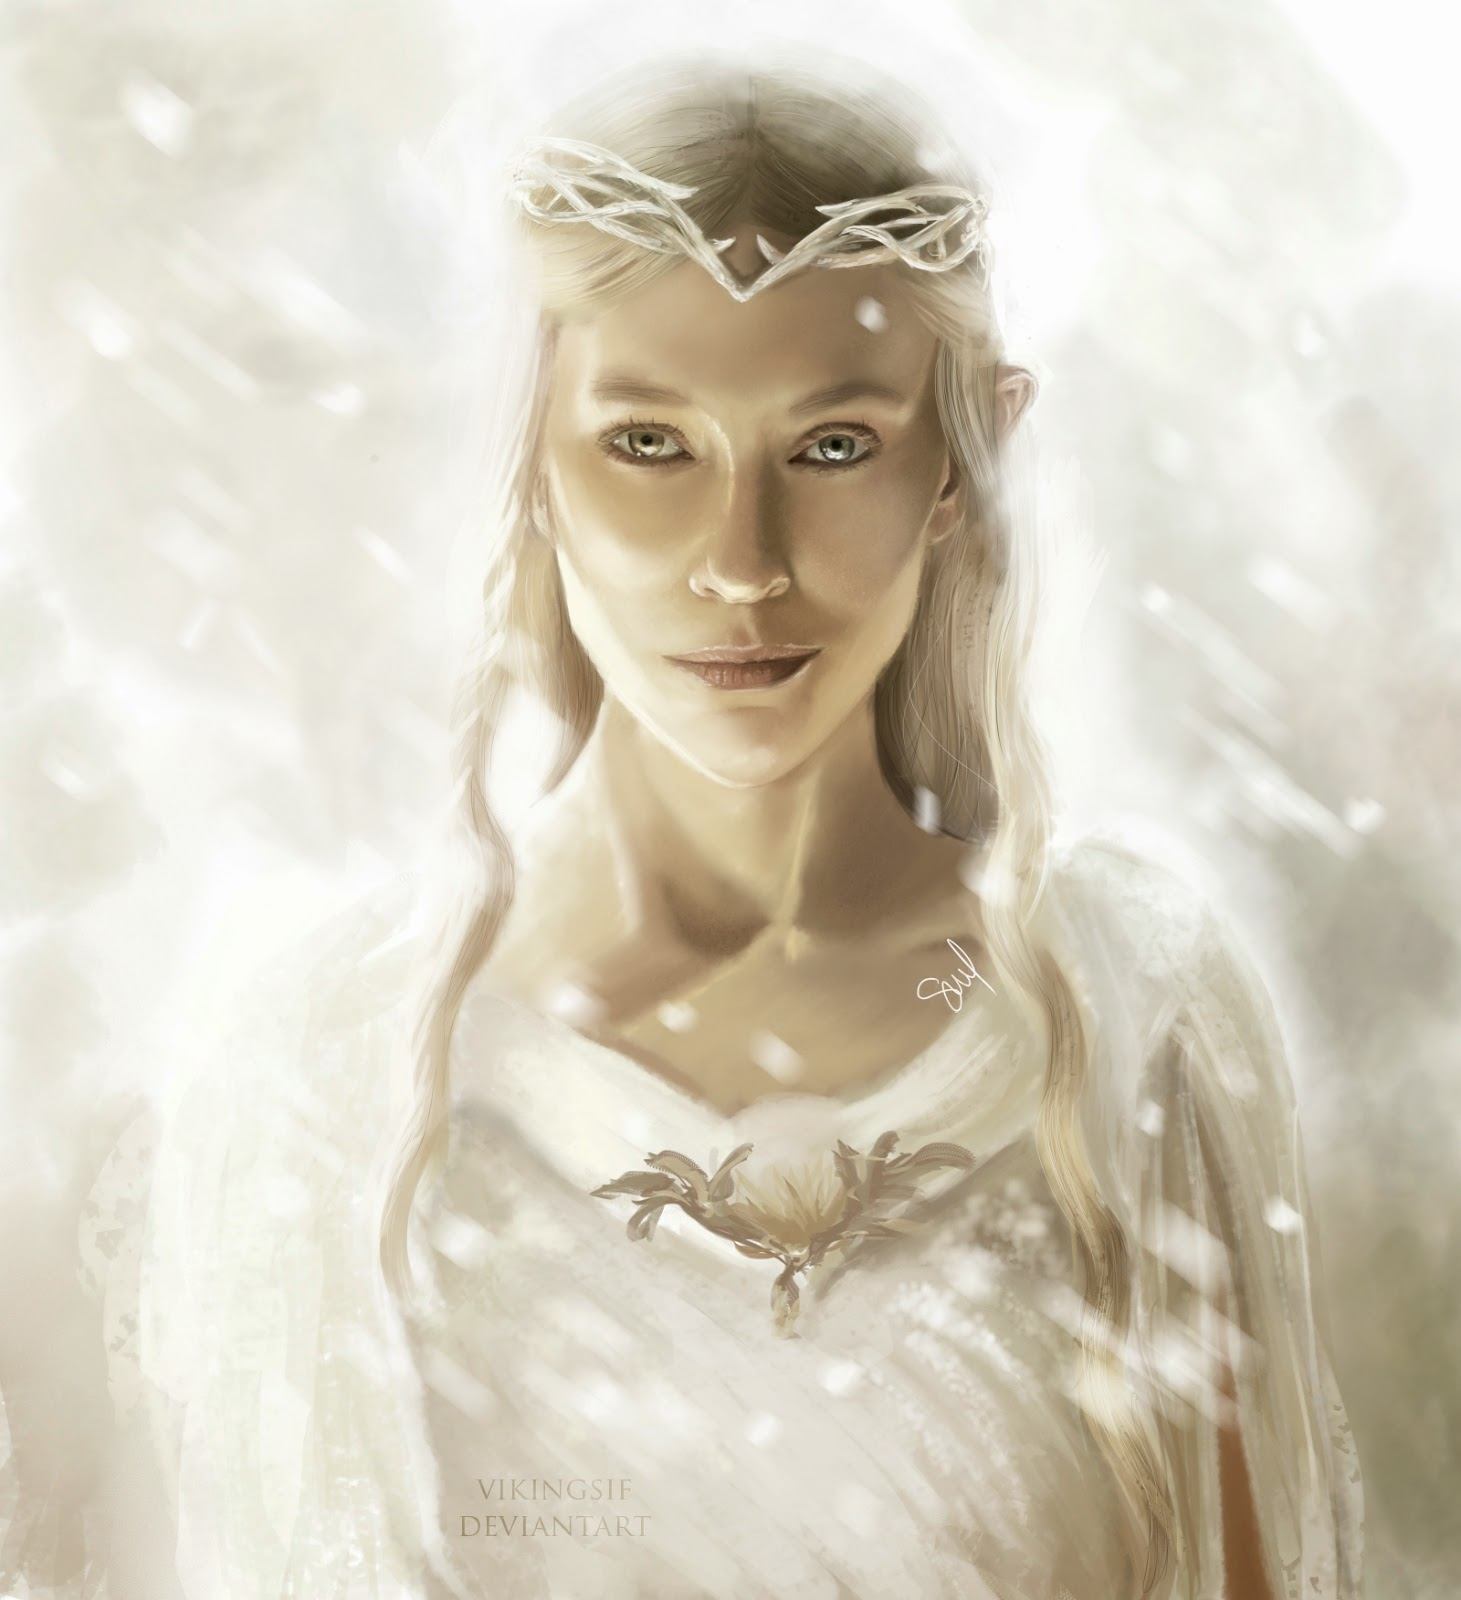 cate-blanchett-as-galadriel-fan-art